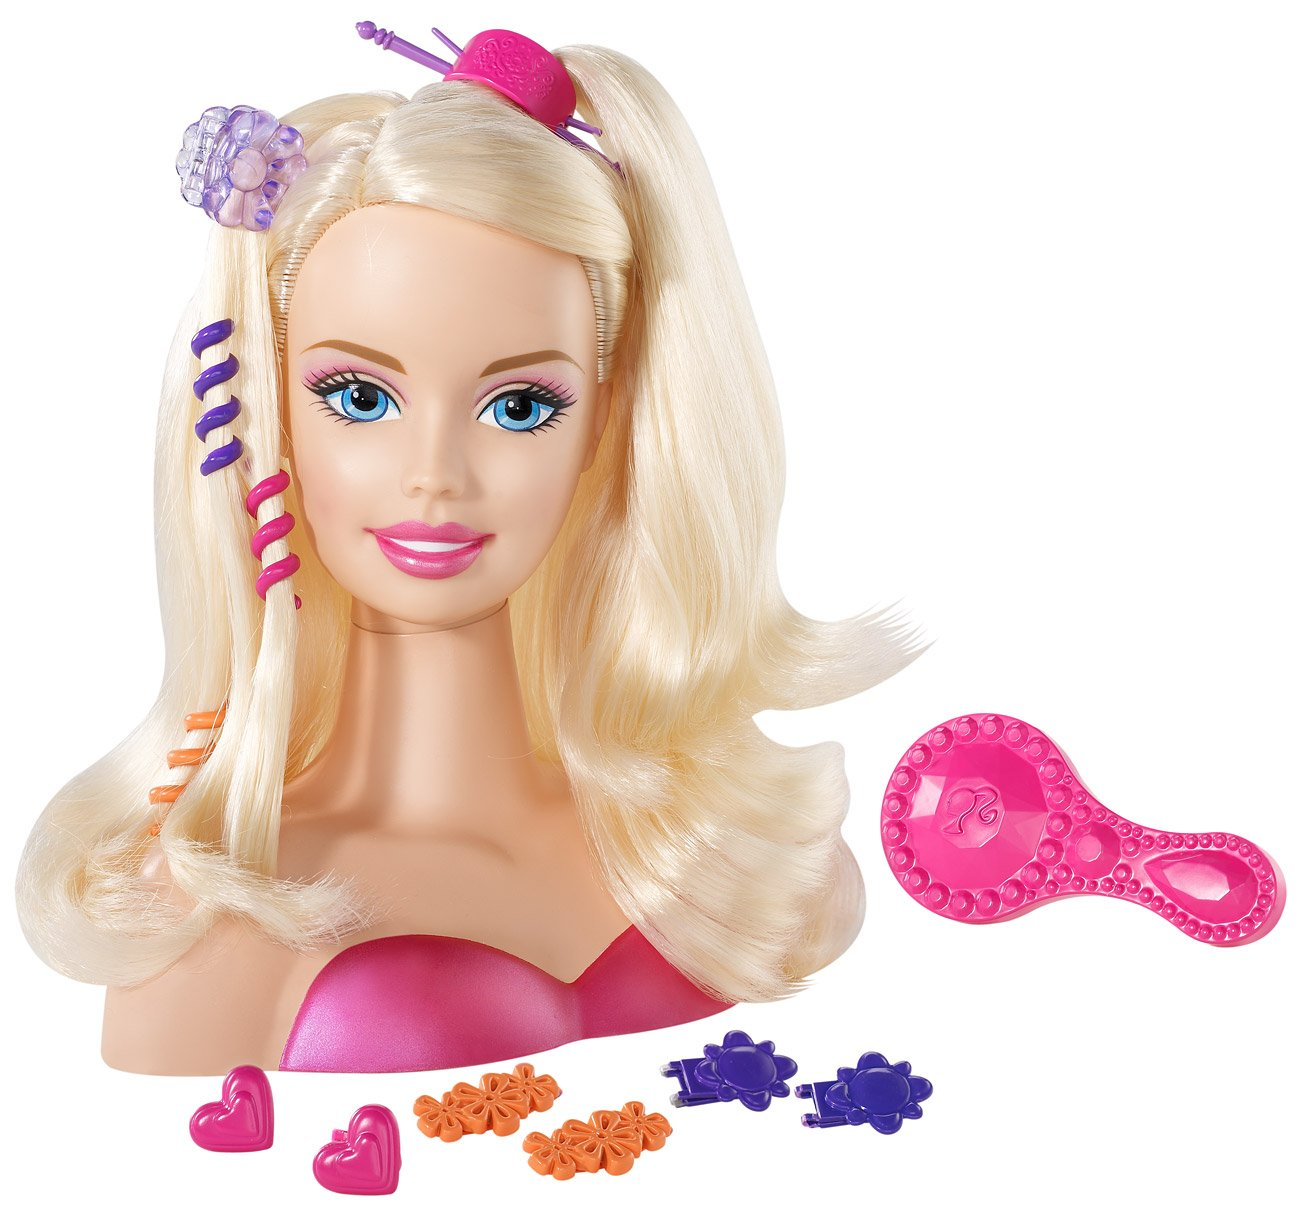 Amazoncom Barbie Blonde Styling Head Small Toys Games - Hairstyle barbie doll